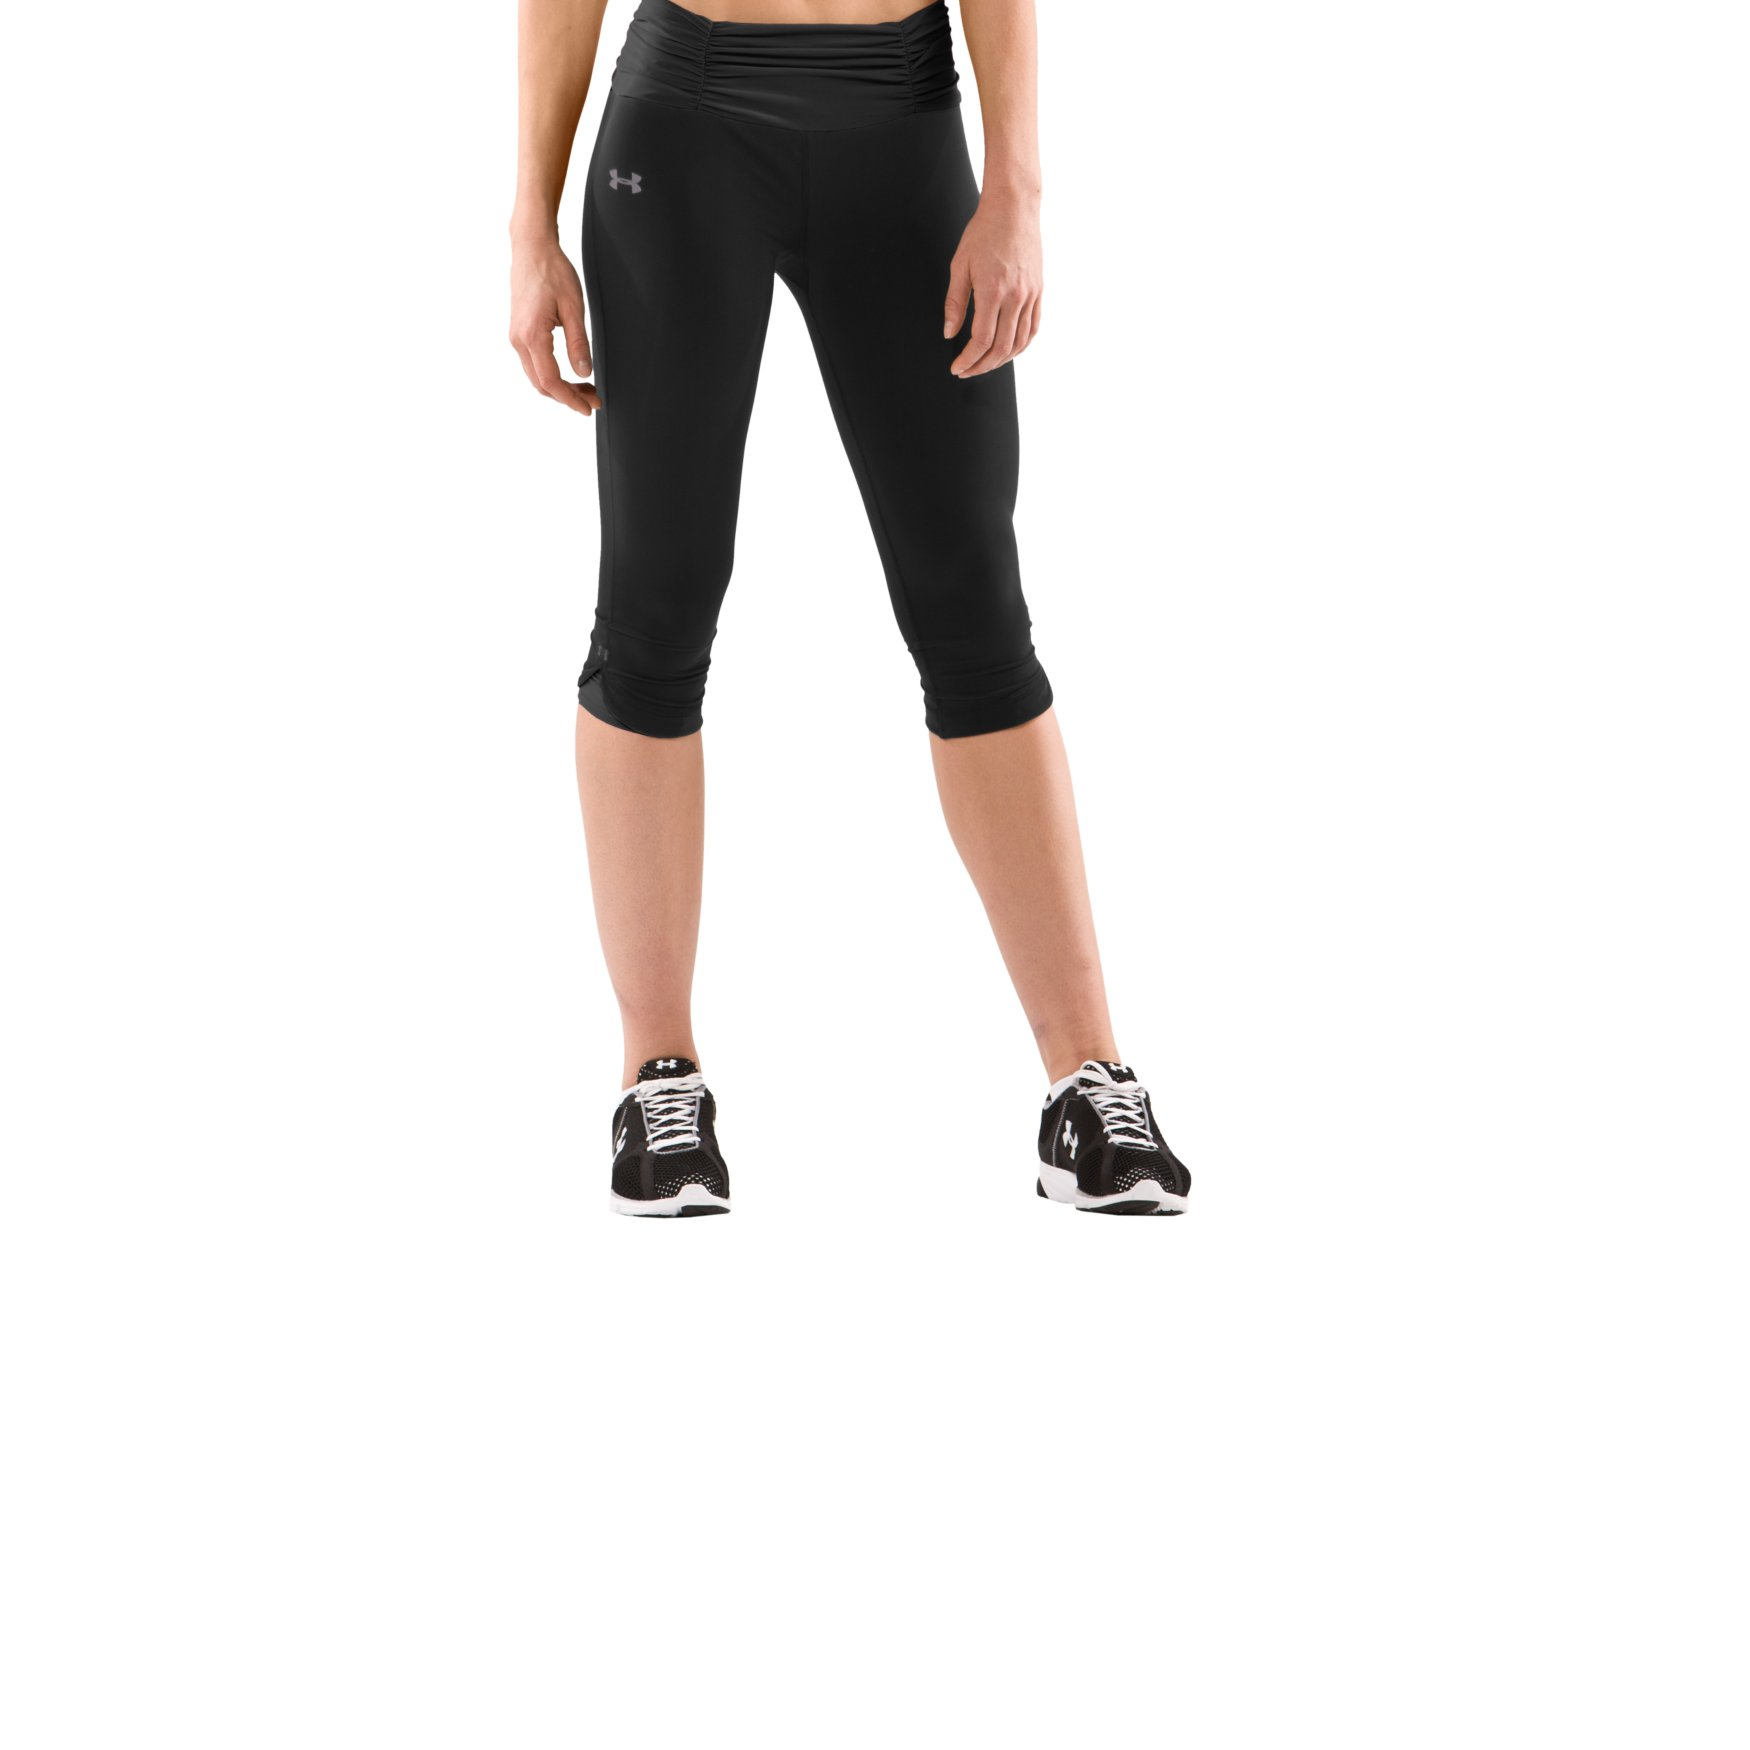 Morgan Asks About Women's Shatter II Capri Pants - Needle